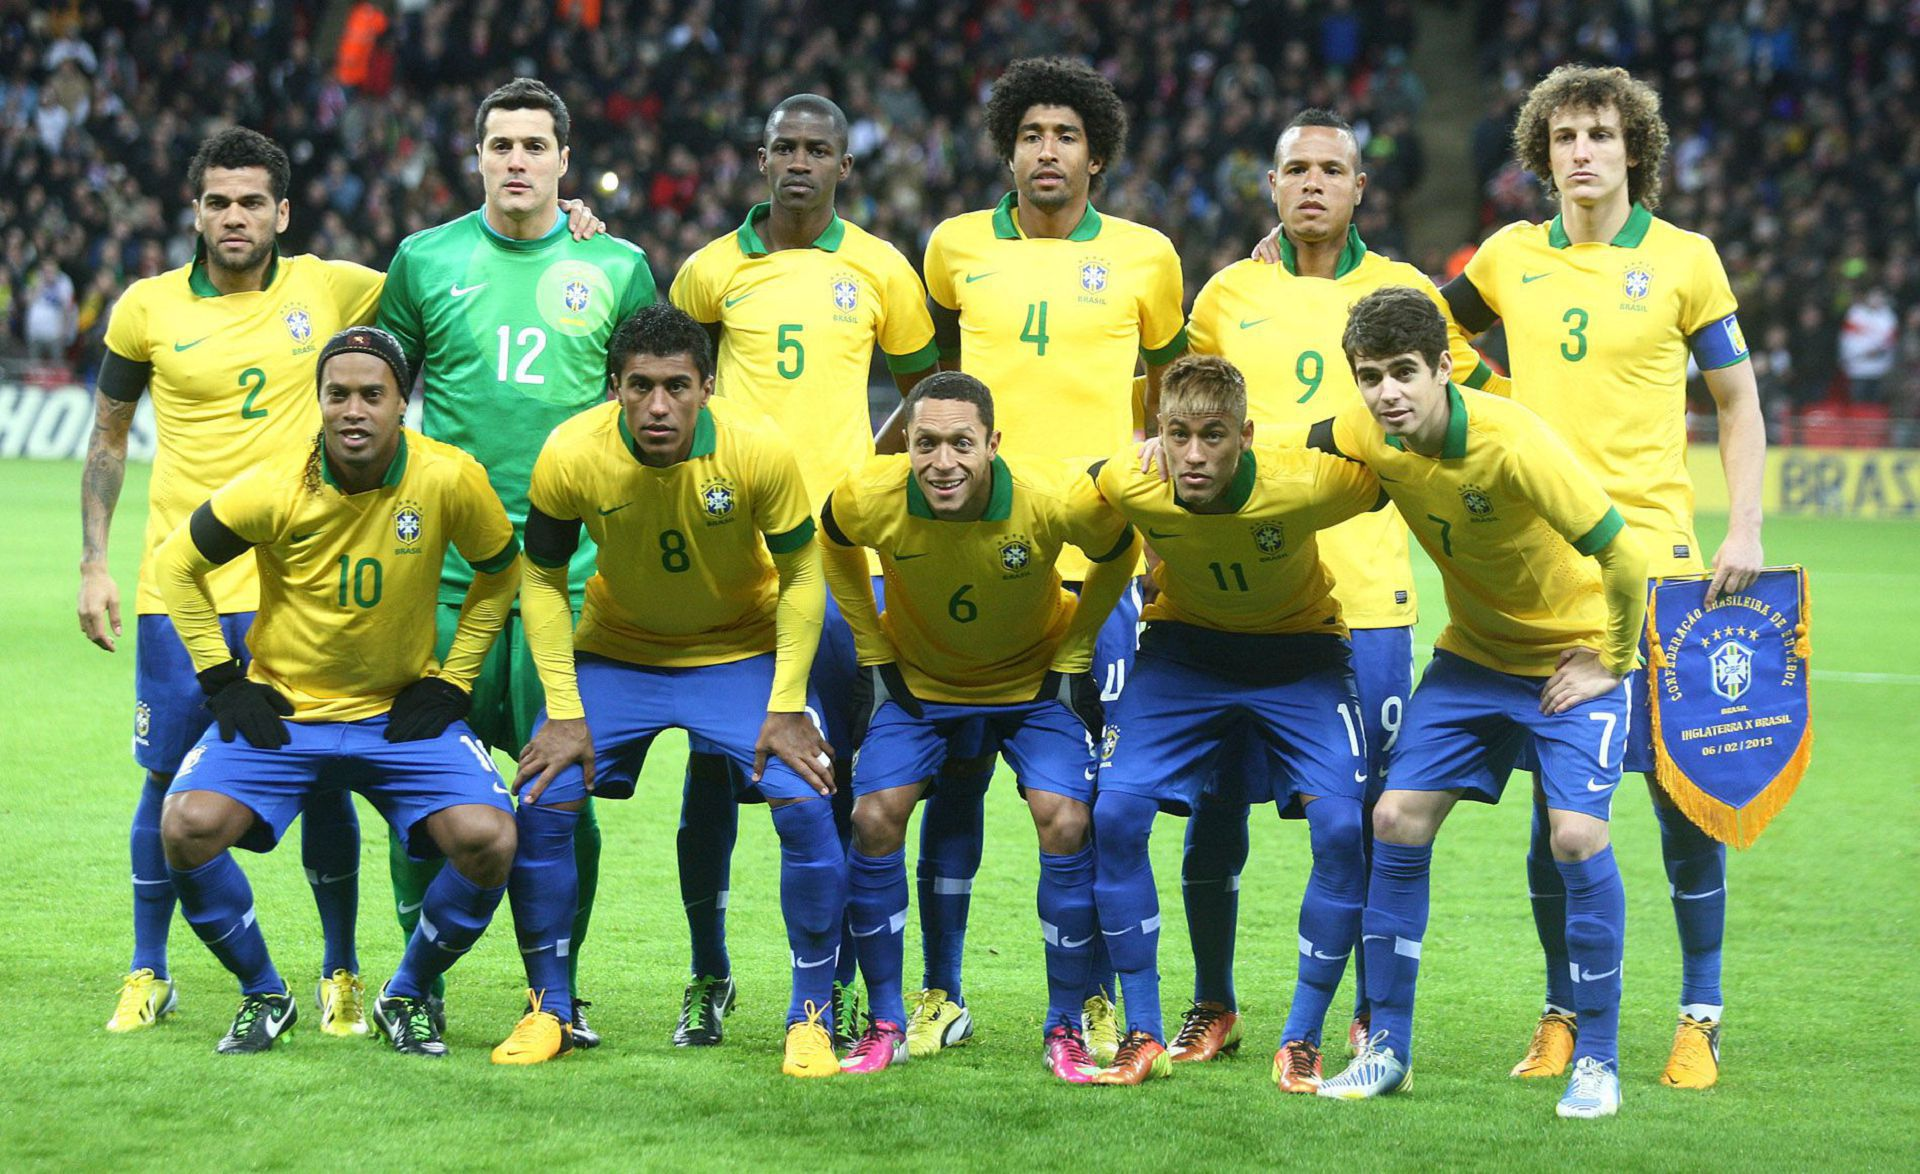 Brazil World Cup 2014 Pictures